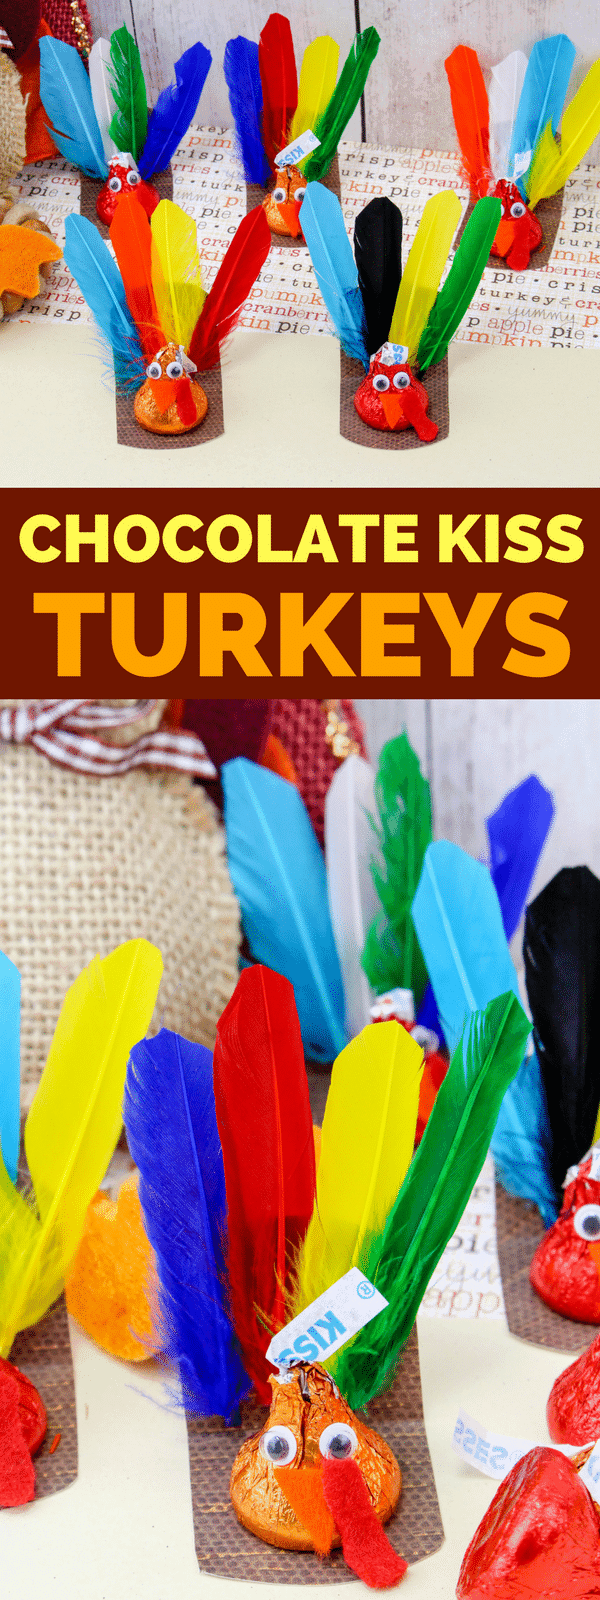 Are you looking for a fun Thanksgiving Craft for your kids? This Chocolate Kiss Turkey Thanksgiving Craft is fun and easy to make. The kids will love them! After all, what is better than a craft that includes candy? #Thanksgiving #ThanksgivingCraft #ThanksgivingTreat #TurkeyCraft